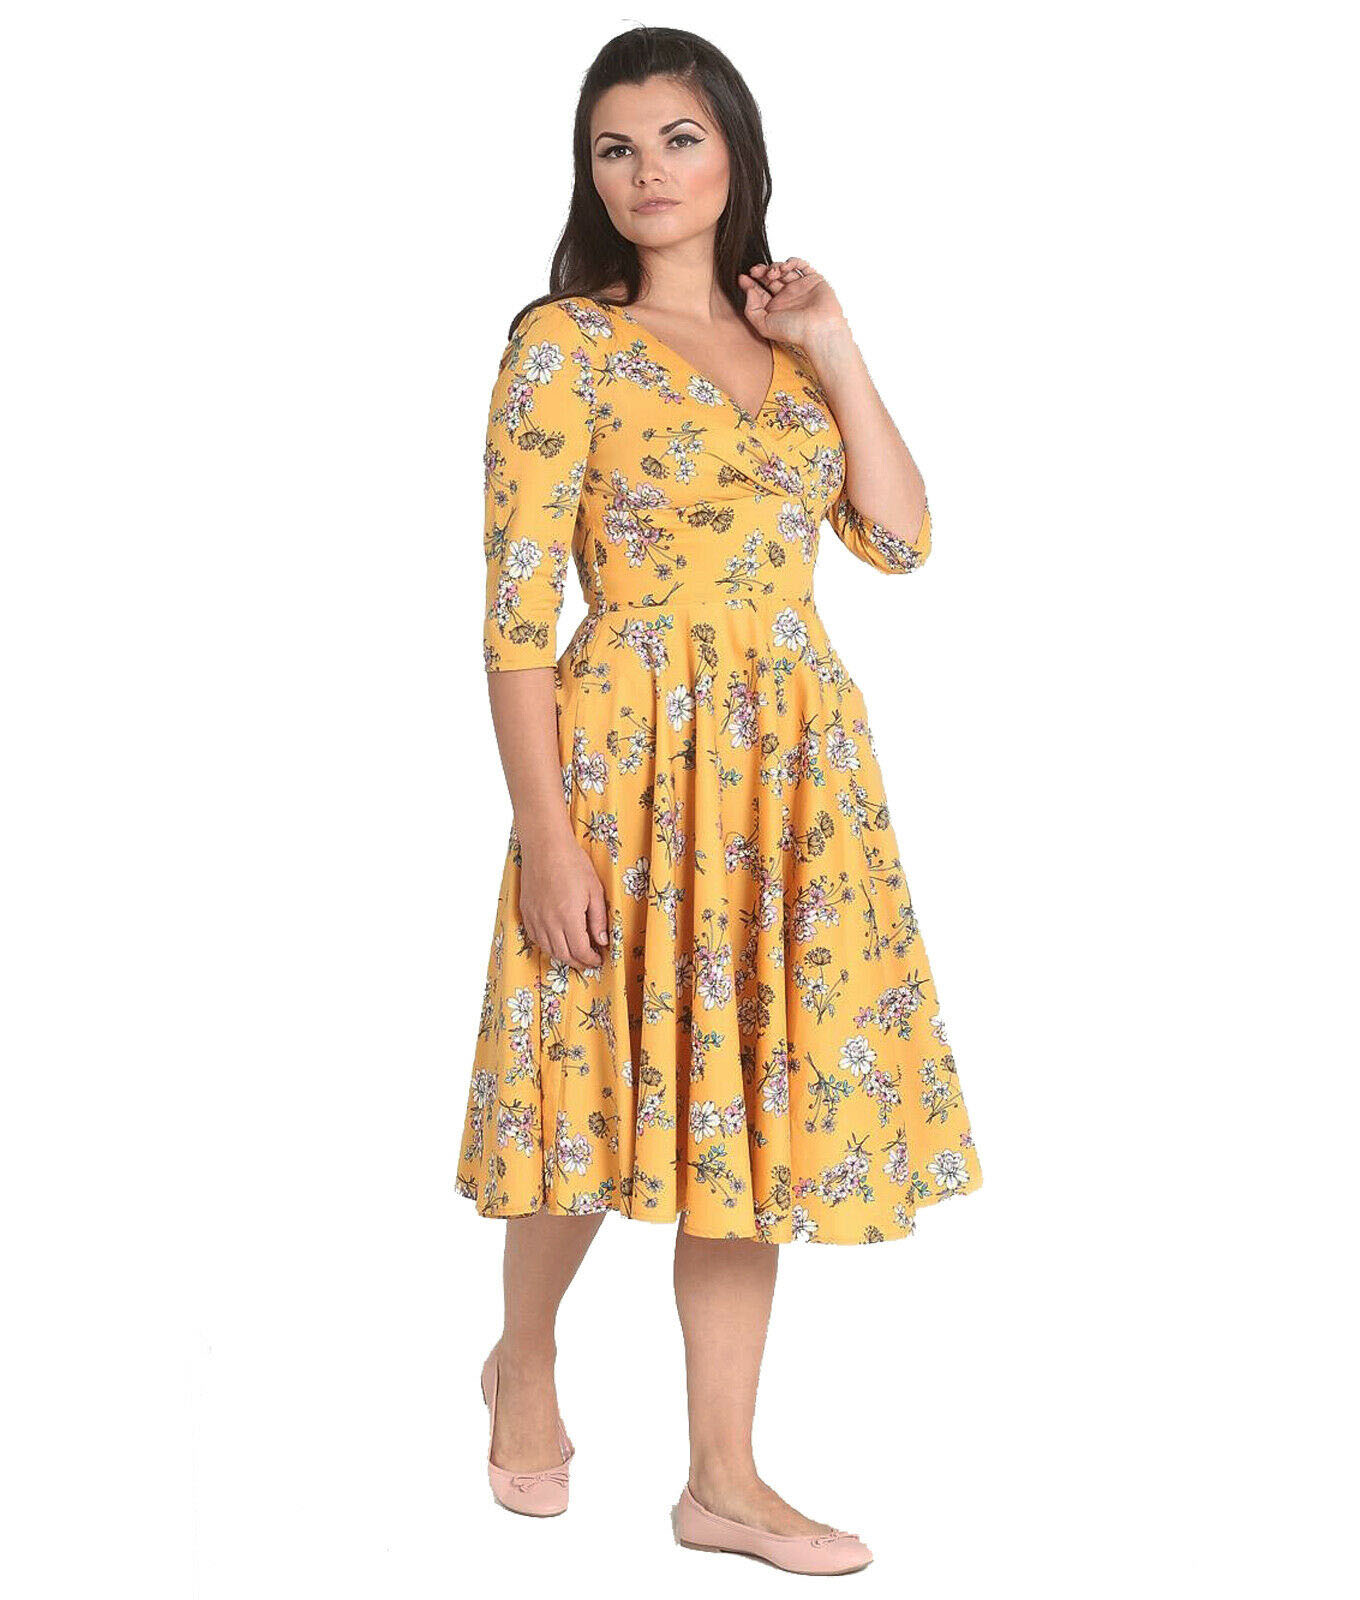 Hell-Bunny-40s-50s-Pin-Up-Vintage-Dress-MURIEL-Flowers-Yellow-All-Sizes thumbnail 3